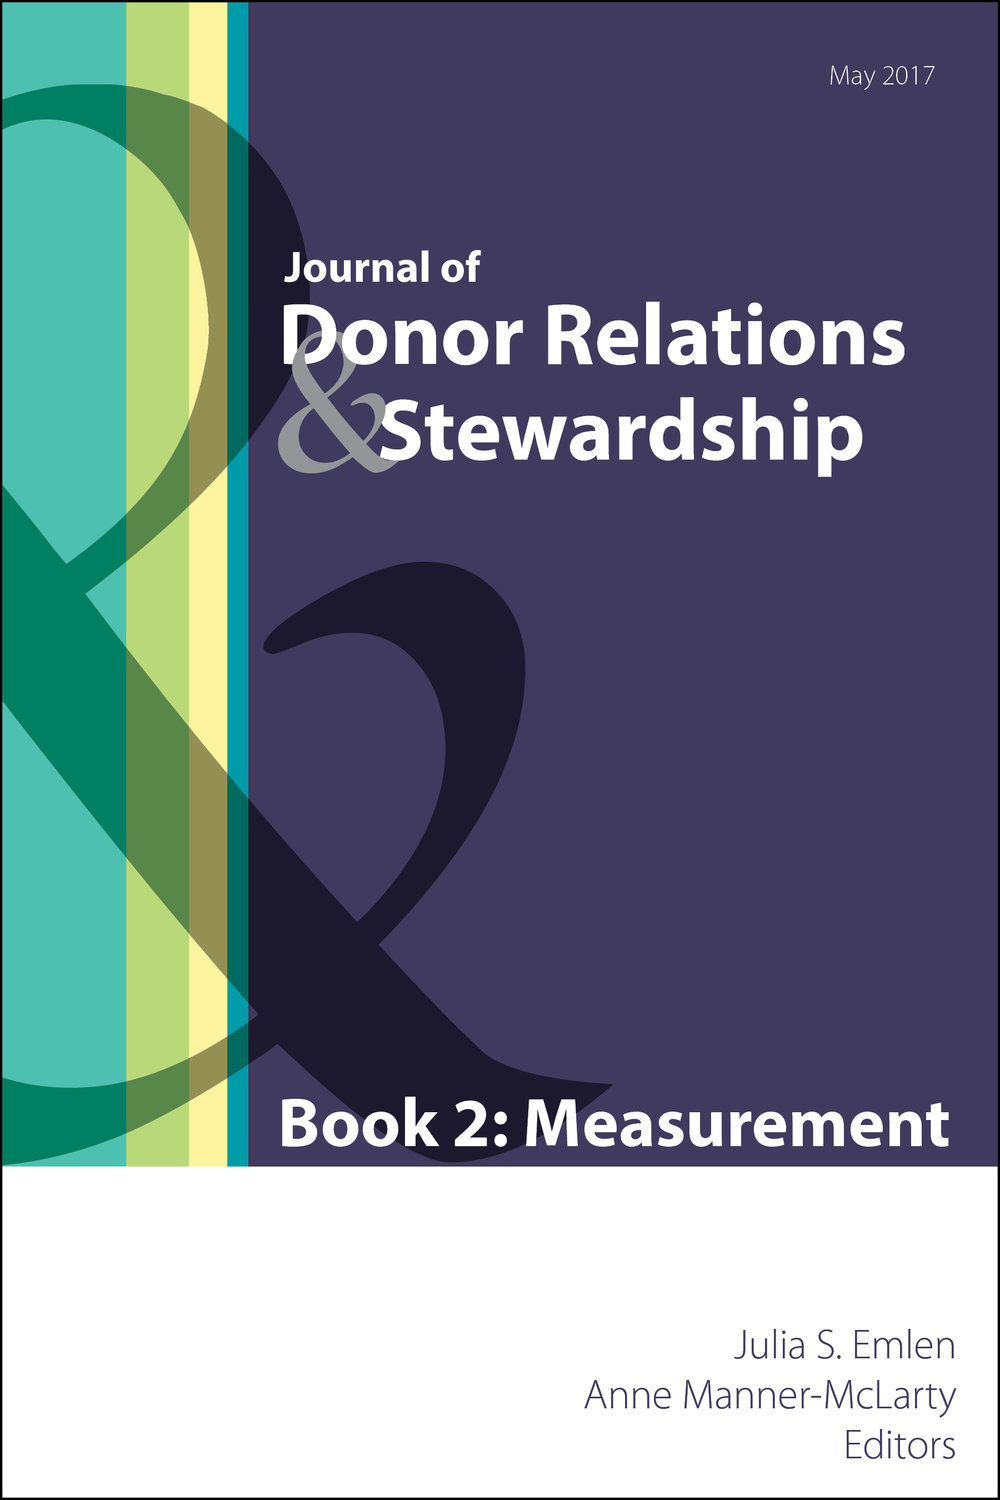 Journal-of-donor-relations-stewardship-front-cover.jpg